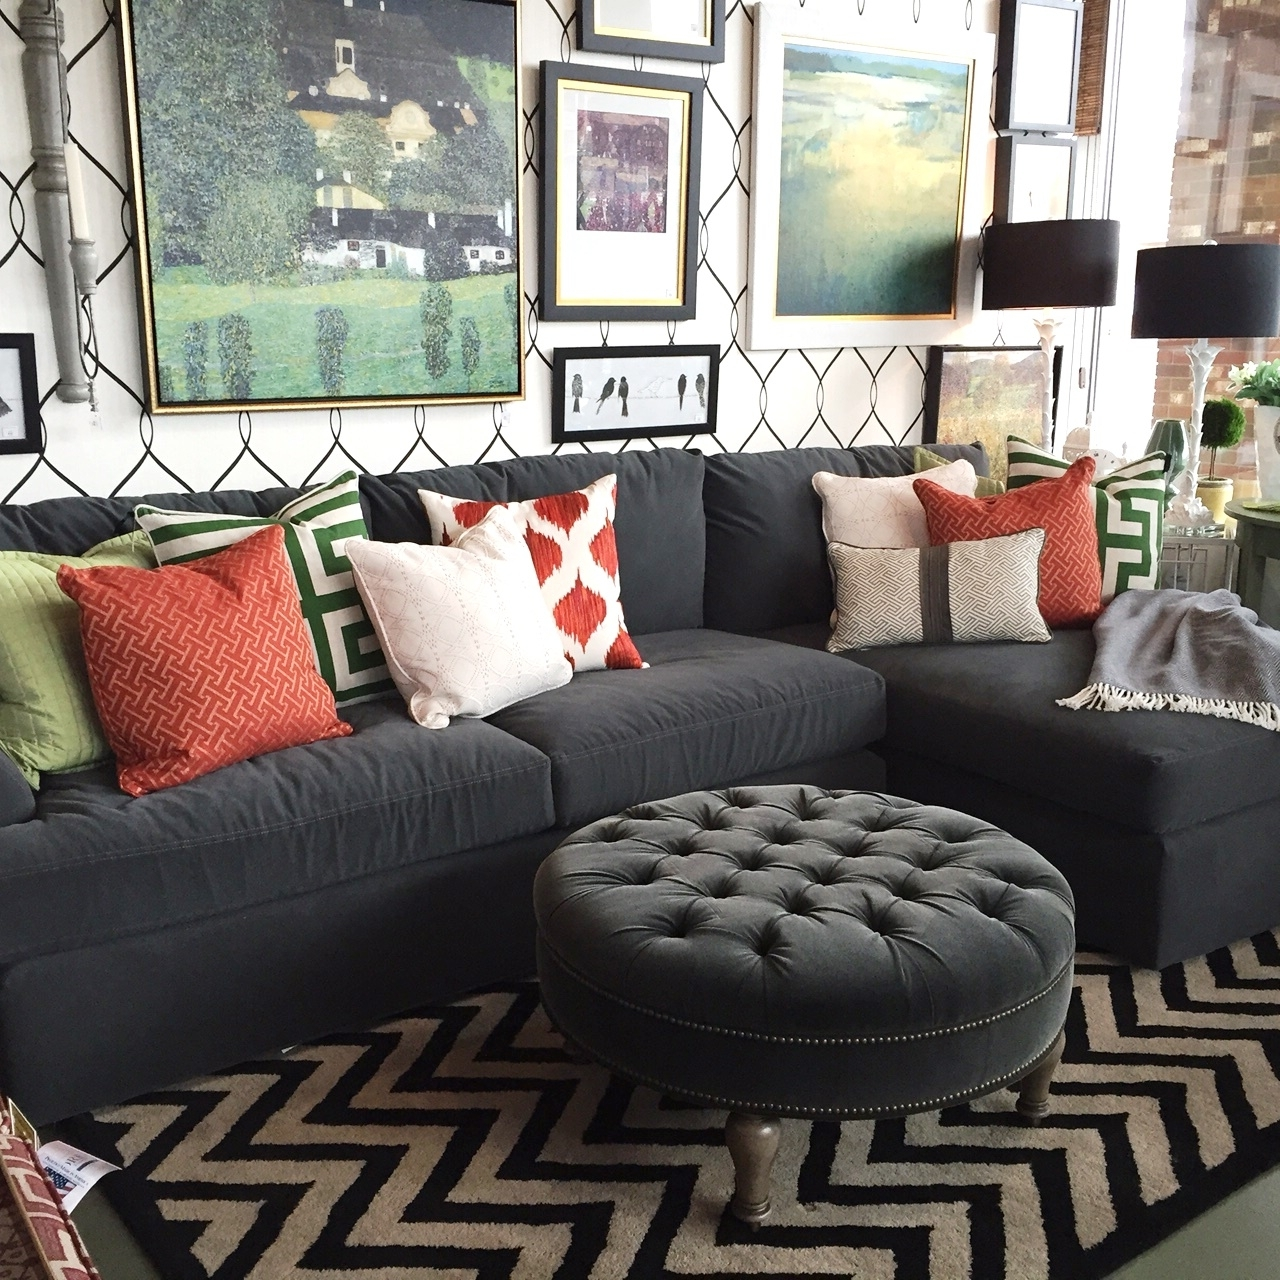 Sectional Sofas In Small Spaces | Trellis Of Erie In Sectional Sofas For Small Spaces (Image 7 of 10)